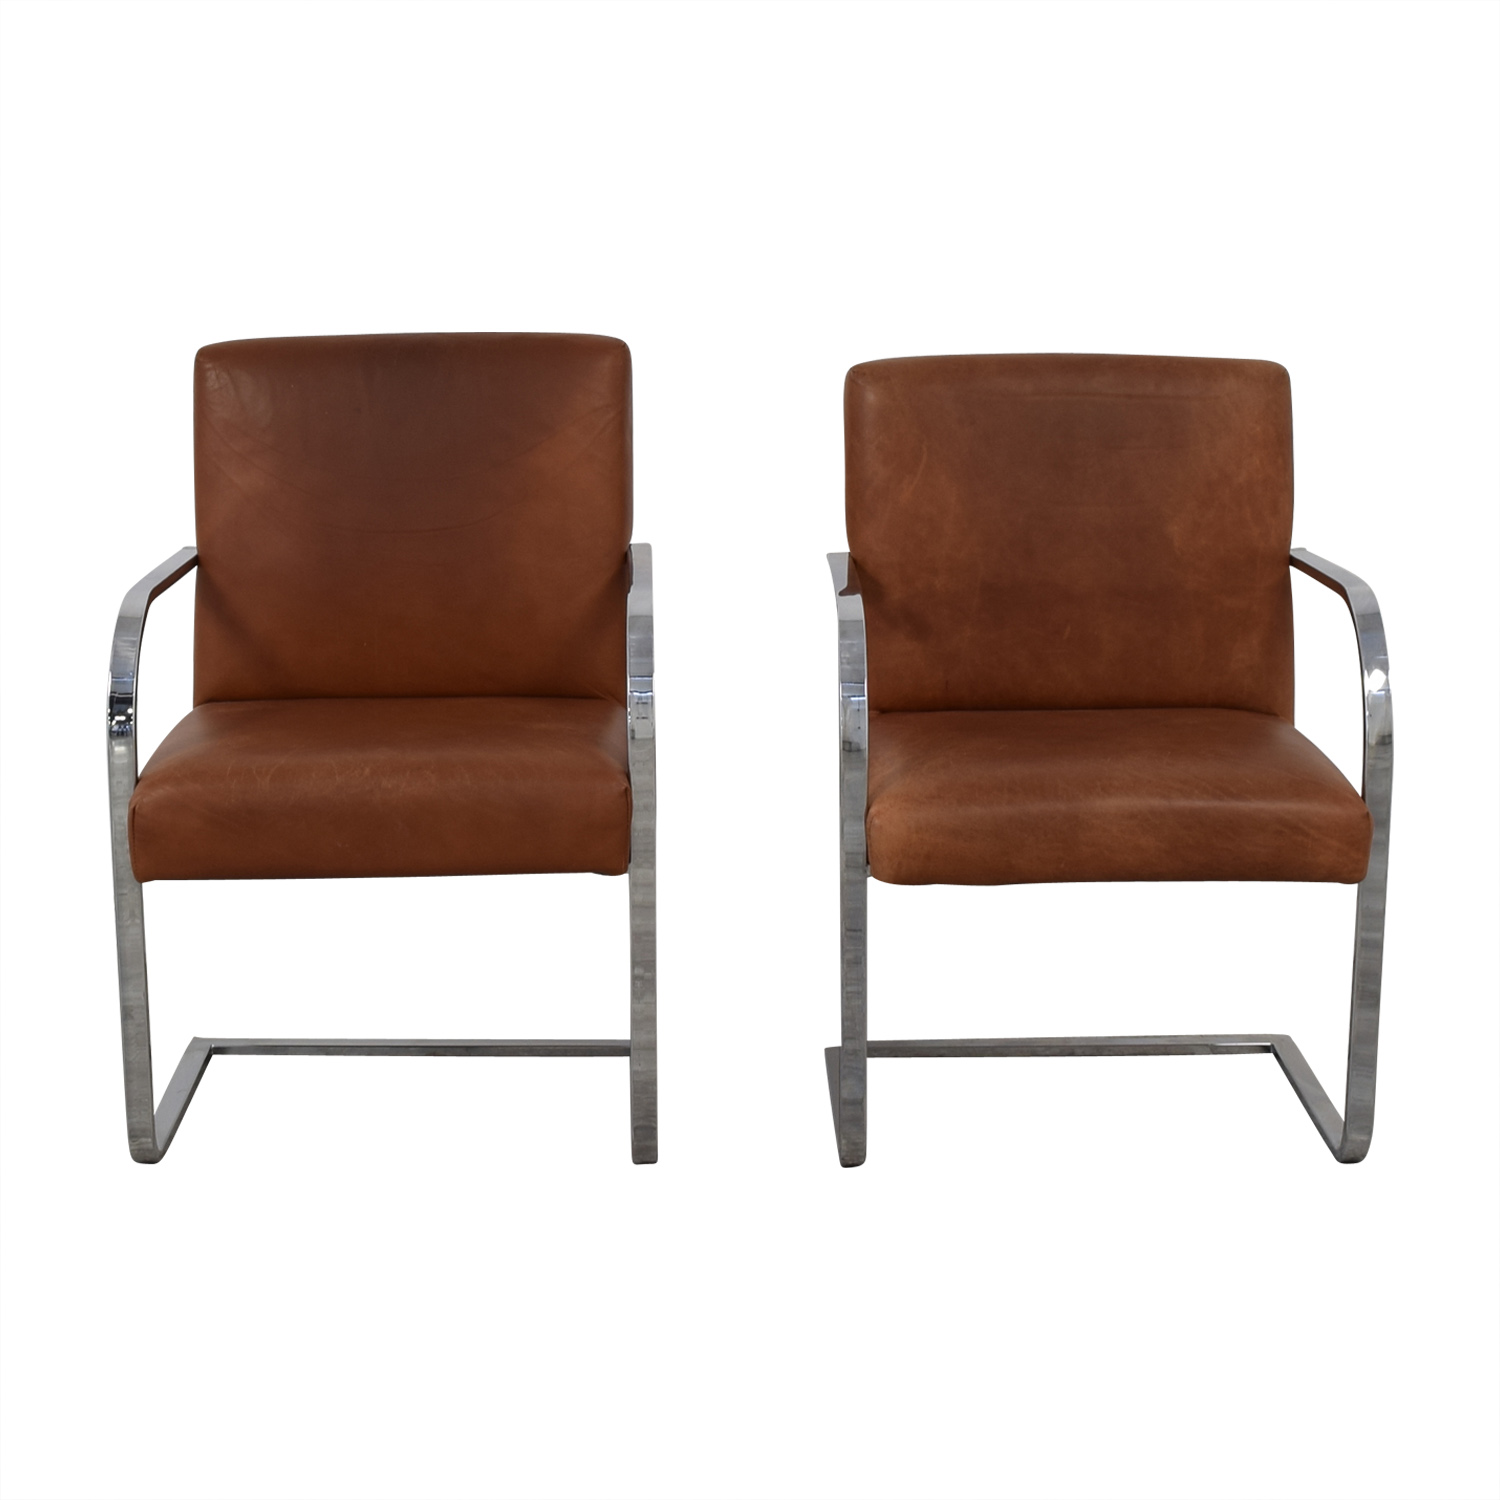 Williams Sonoma Williams Sonoma Mercer Dining Armchairs on sale